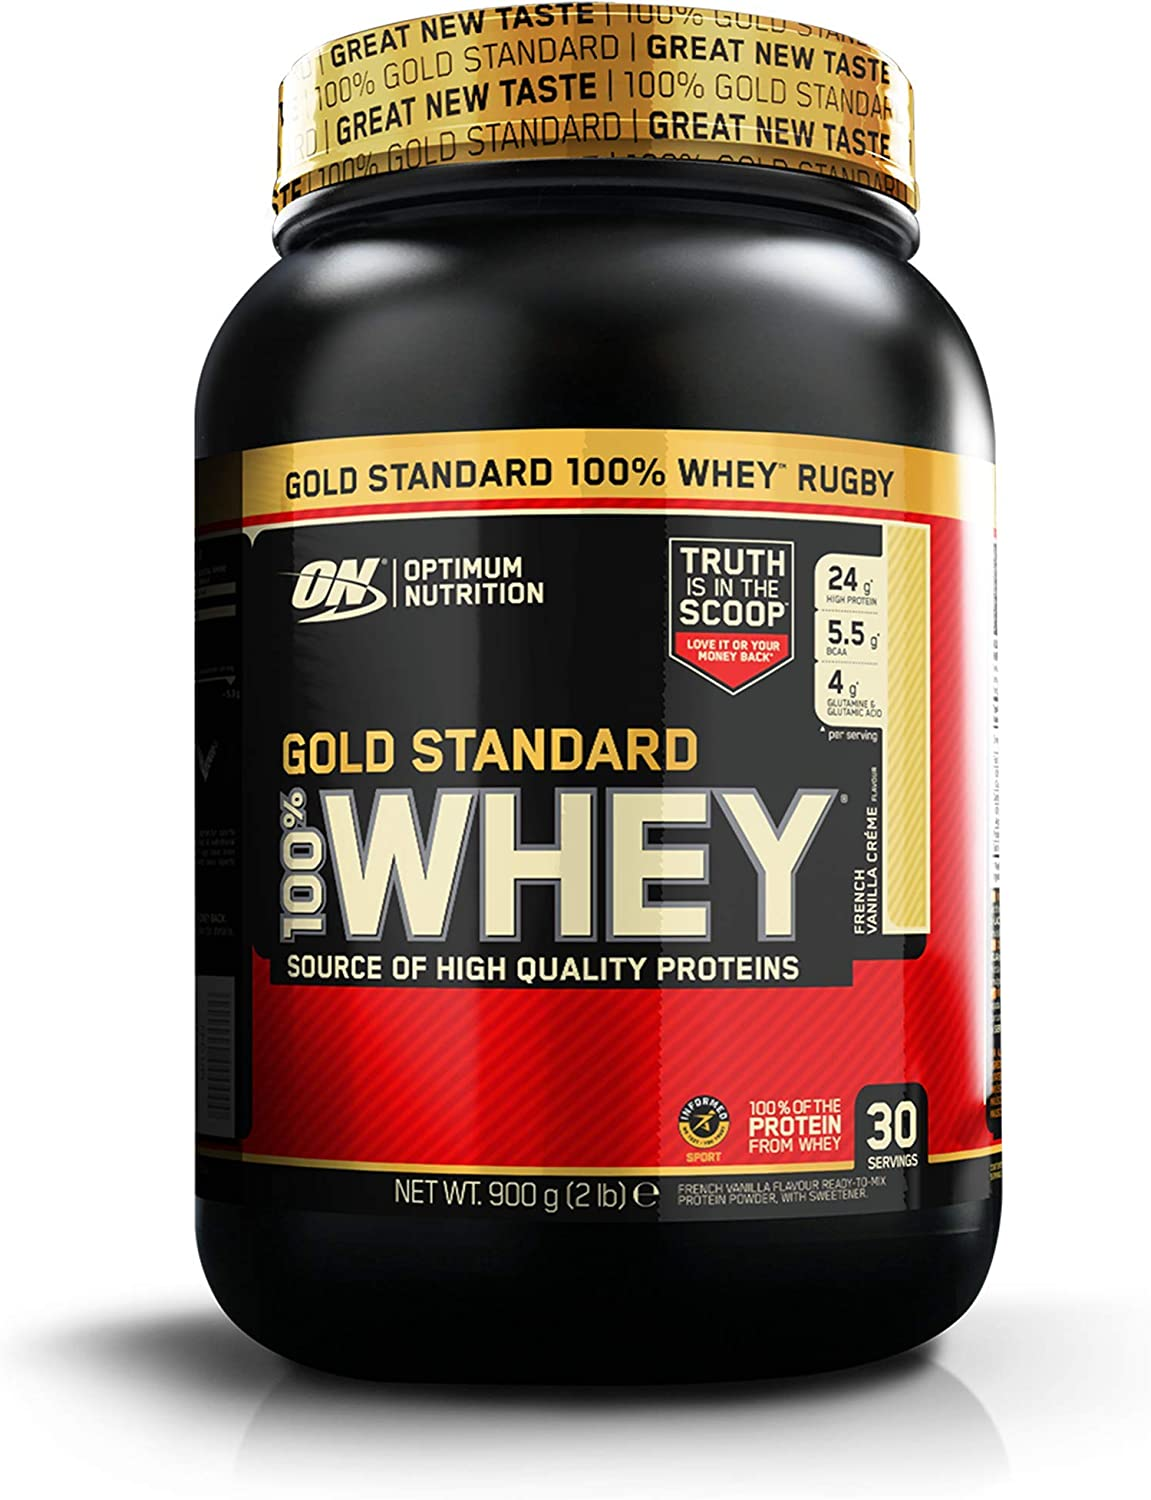 Optimum Nutrition Gold Standard Whey Protein Powder Muscle Building Supplements With Glutamine